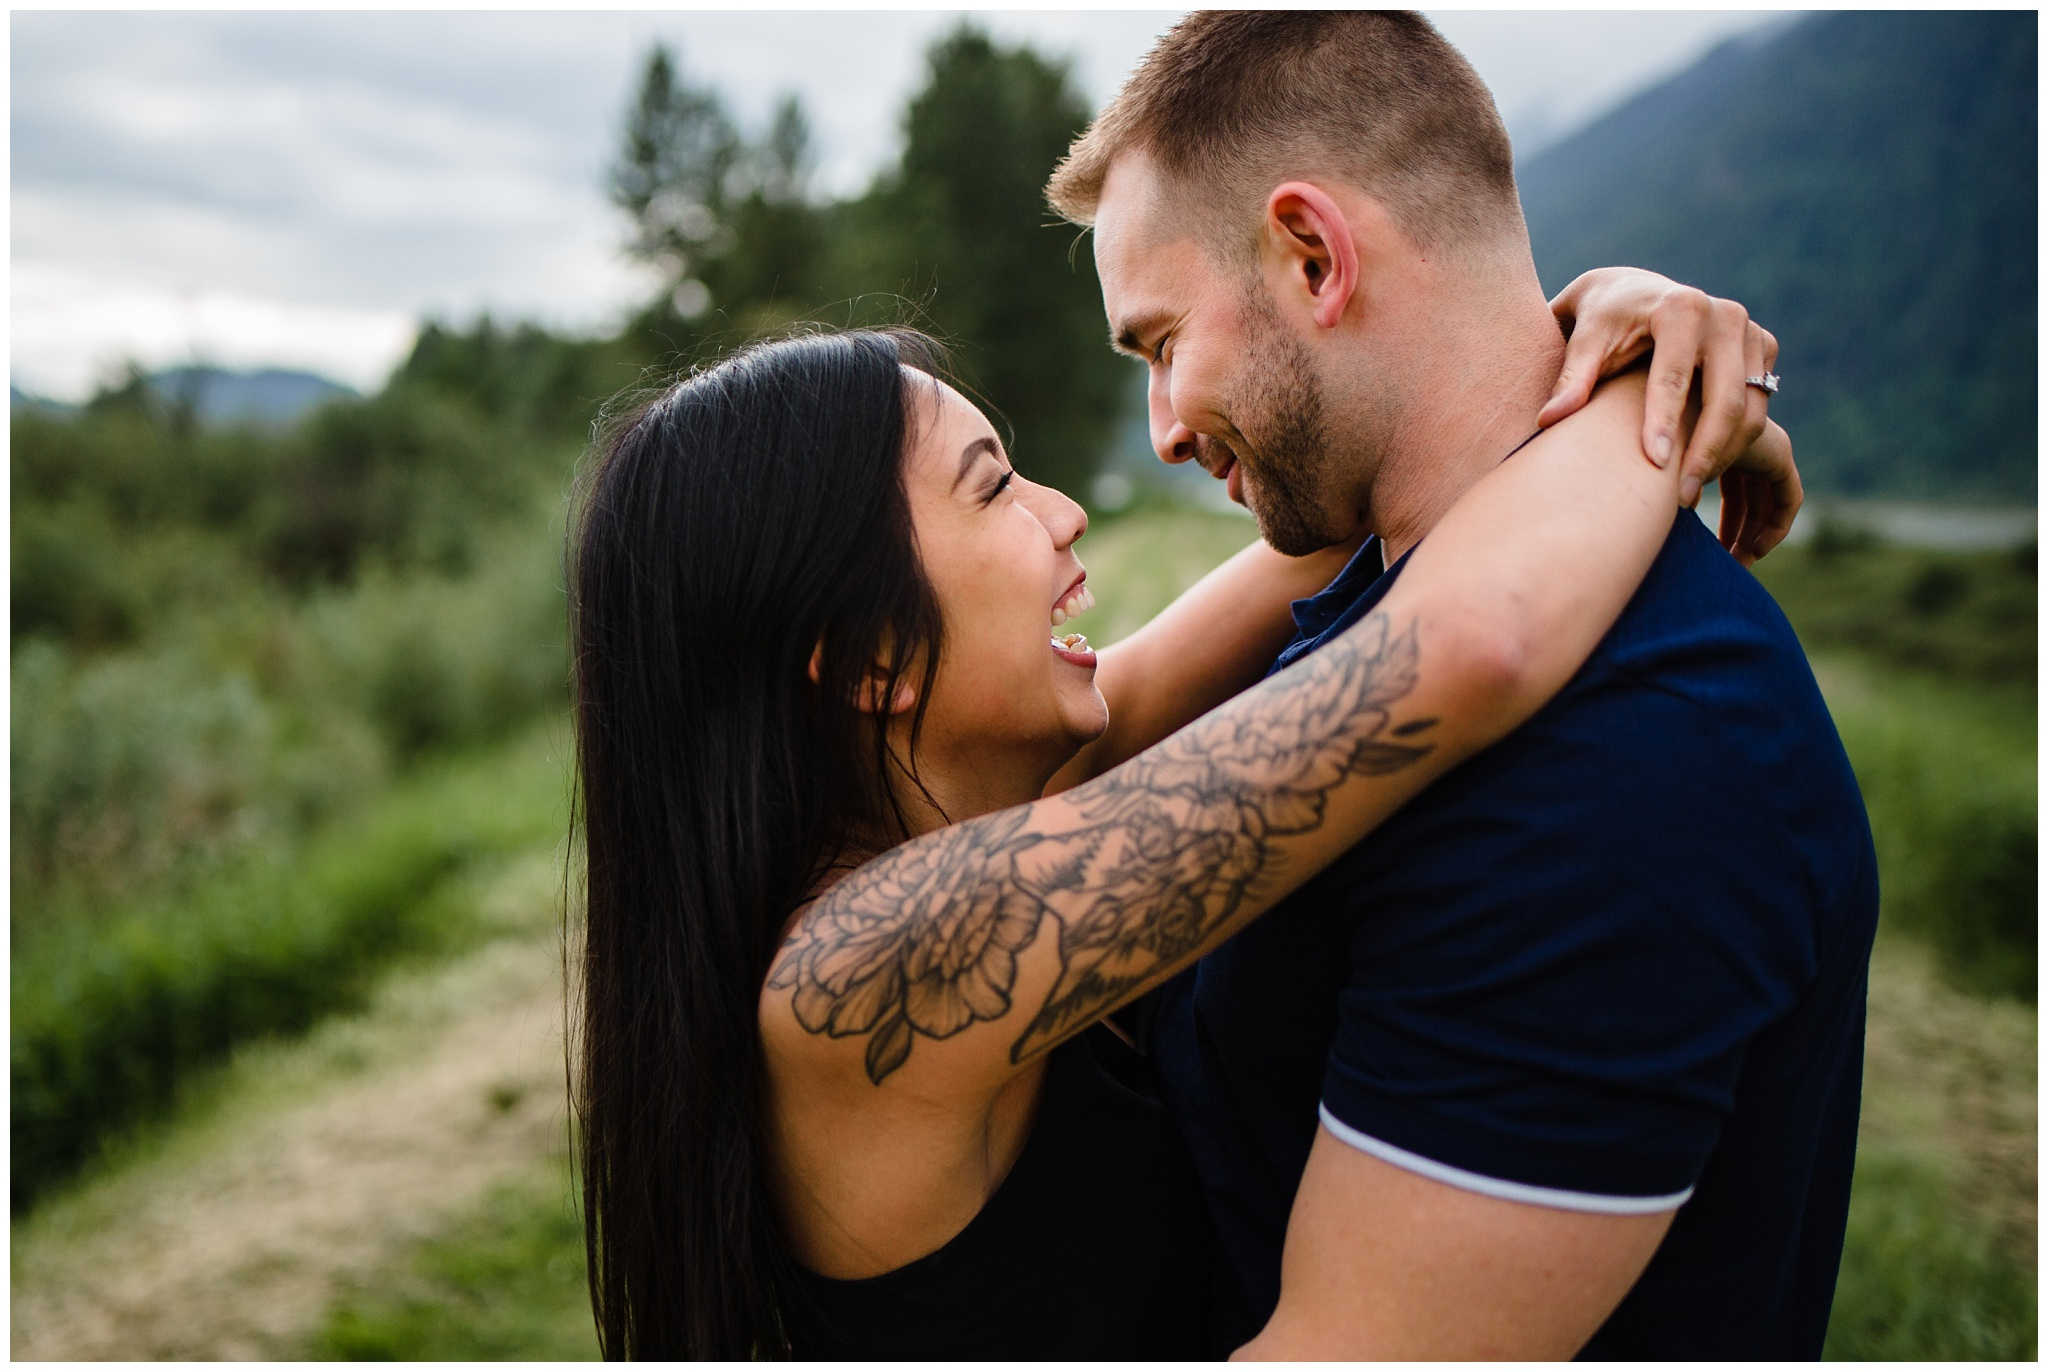 Pitt Lake Engagement Photos Maple Ridge Candid Fun Romantic Couples Photography_0007.jpg